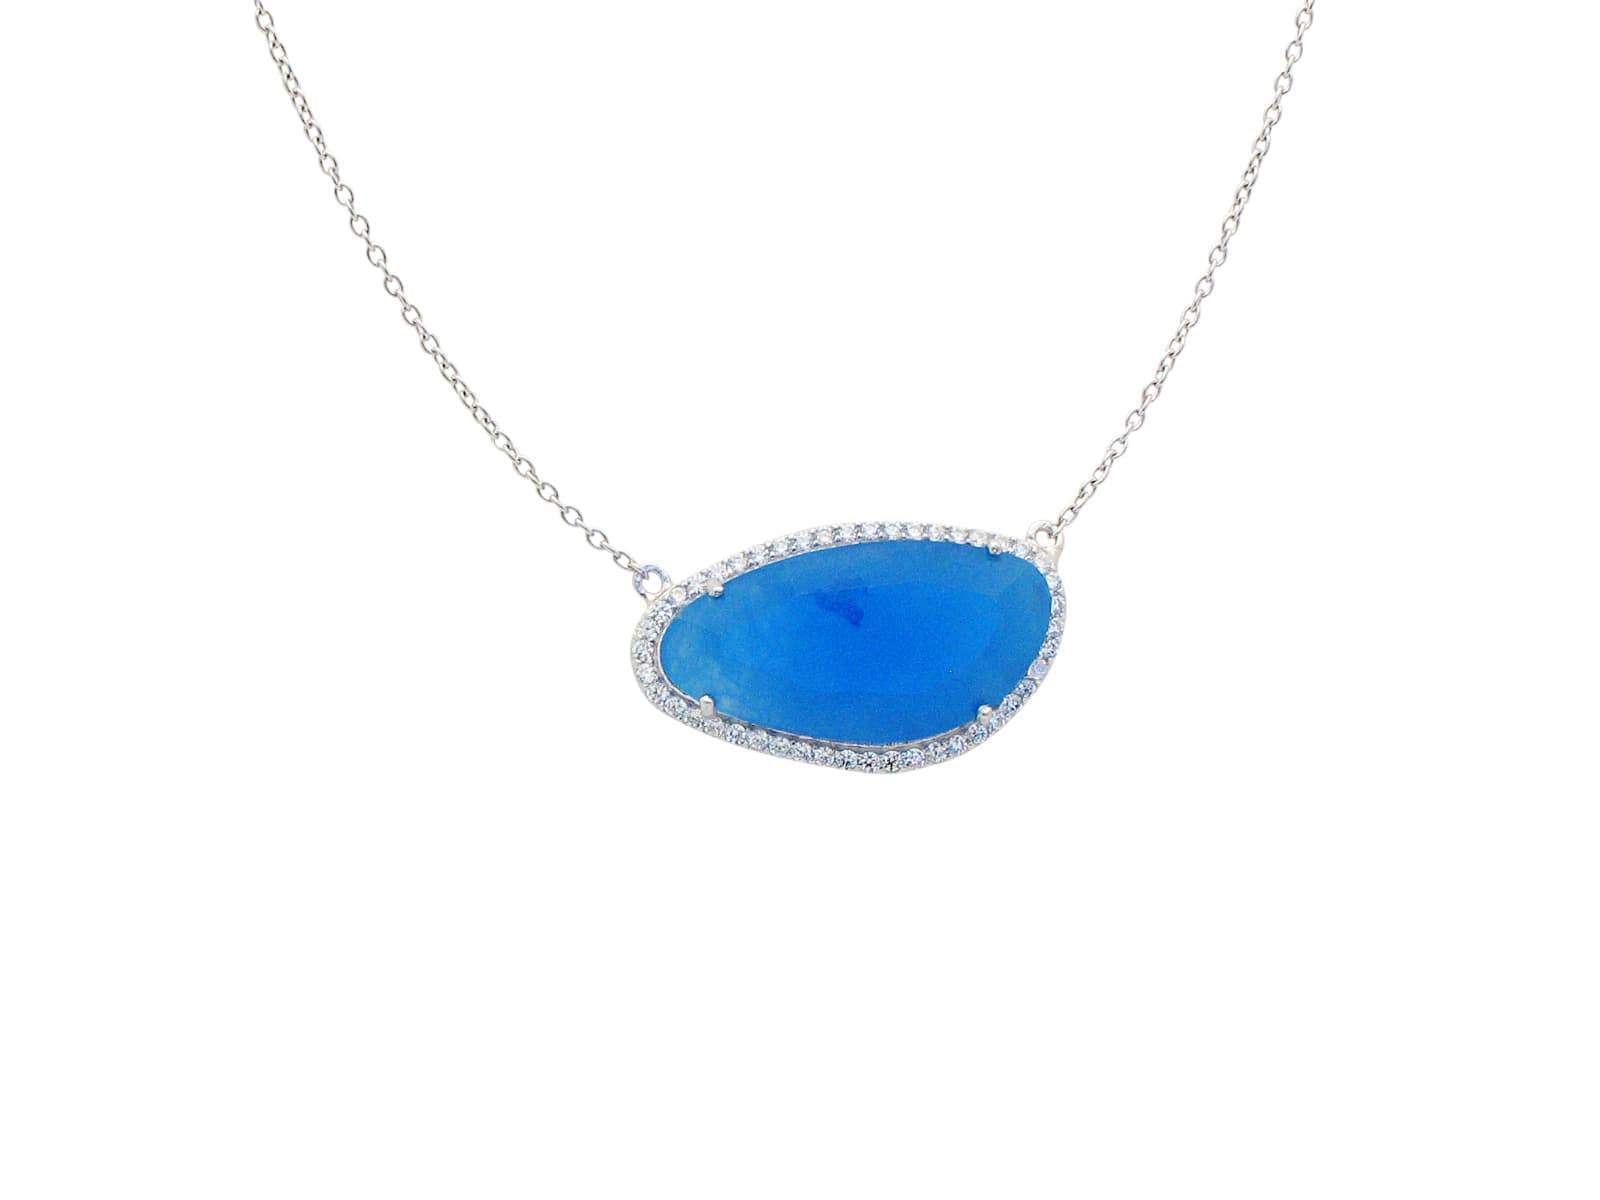 Milky Blue Stone Slice Necklace